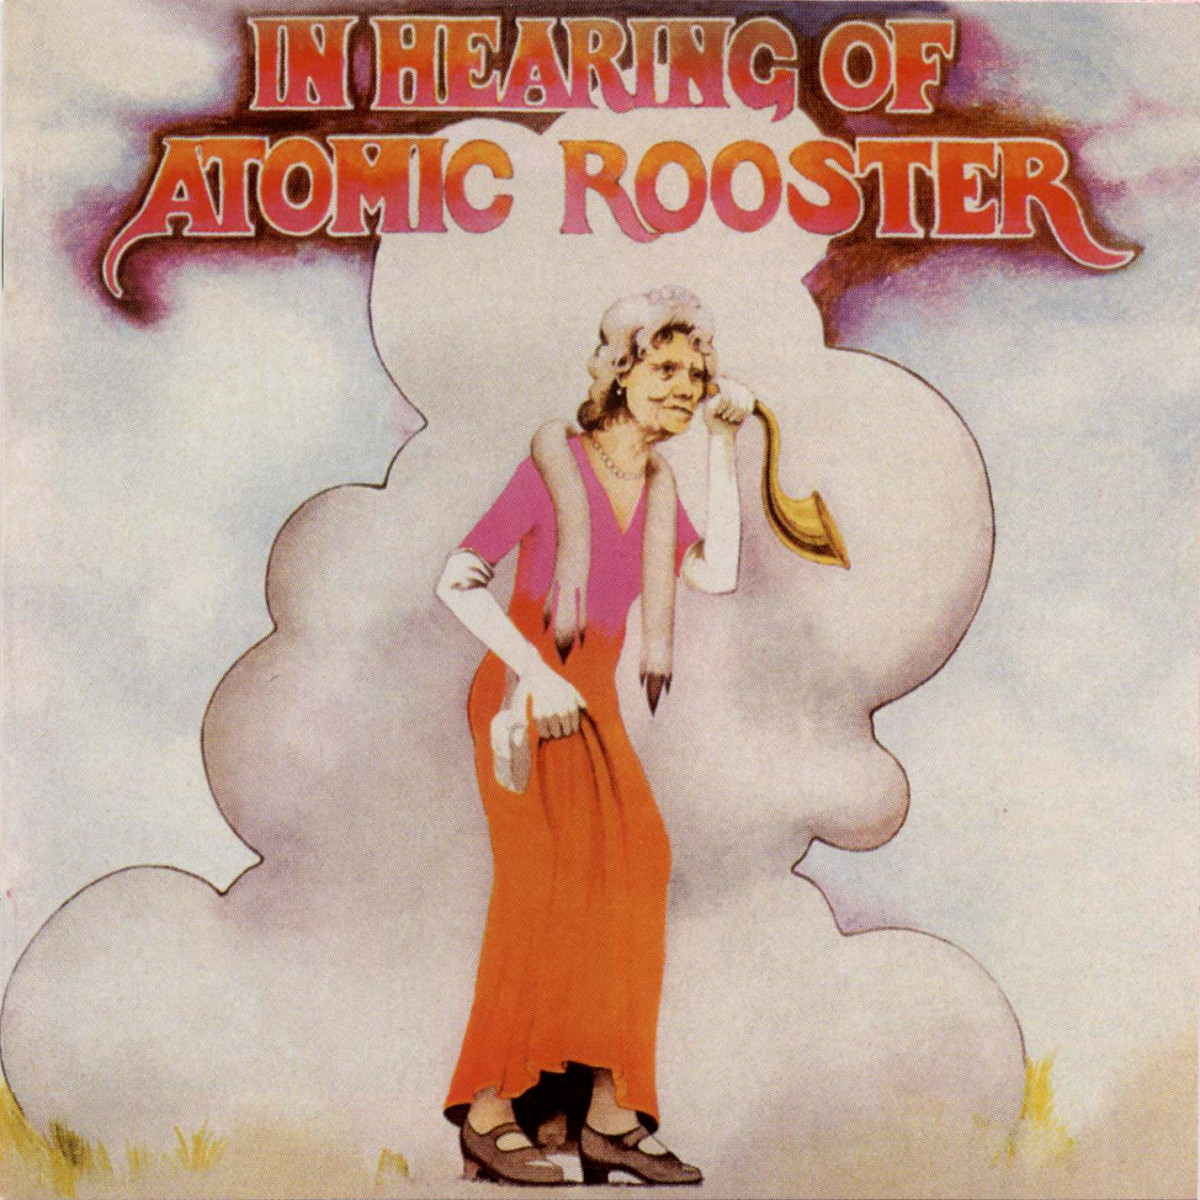 "Atomic Rooster ""In Hearing Of"" Pegasus PEG-1 12"" LP Vinyl Record, UK Pressing (1971) Album Cover Art & Design by Roger Dean"